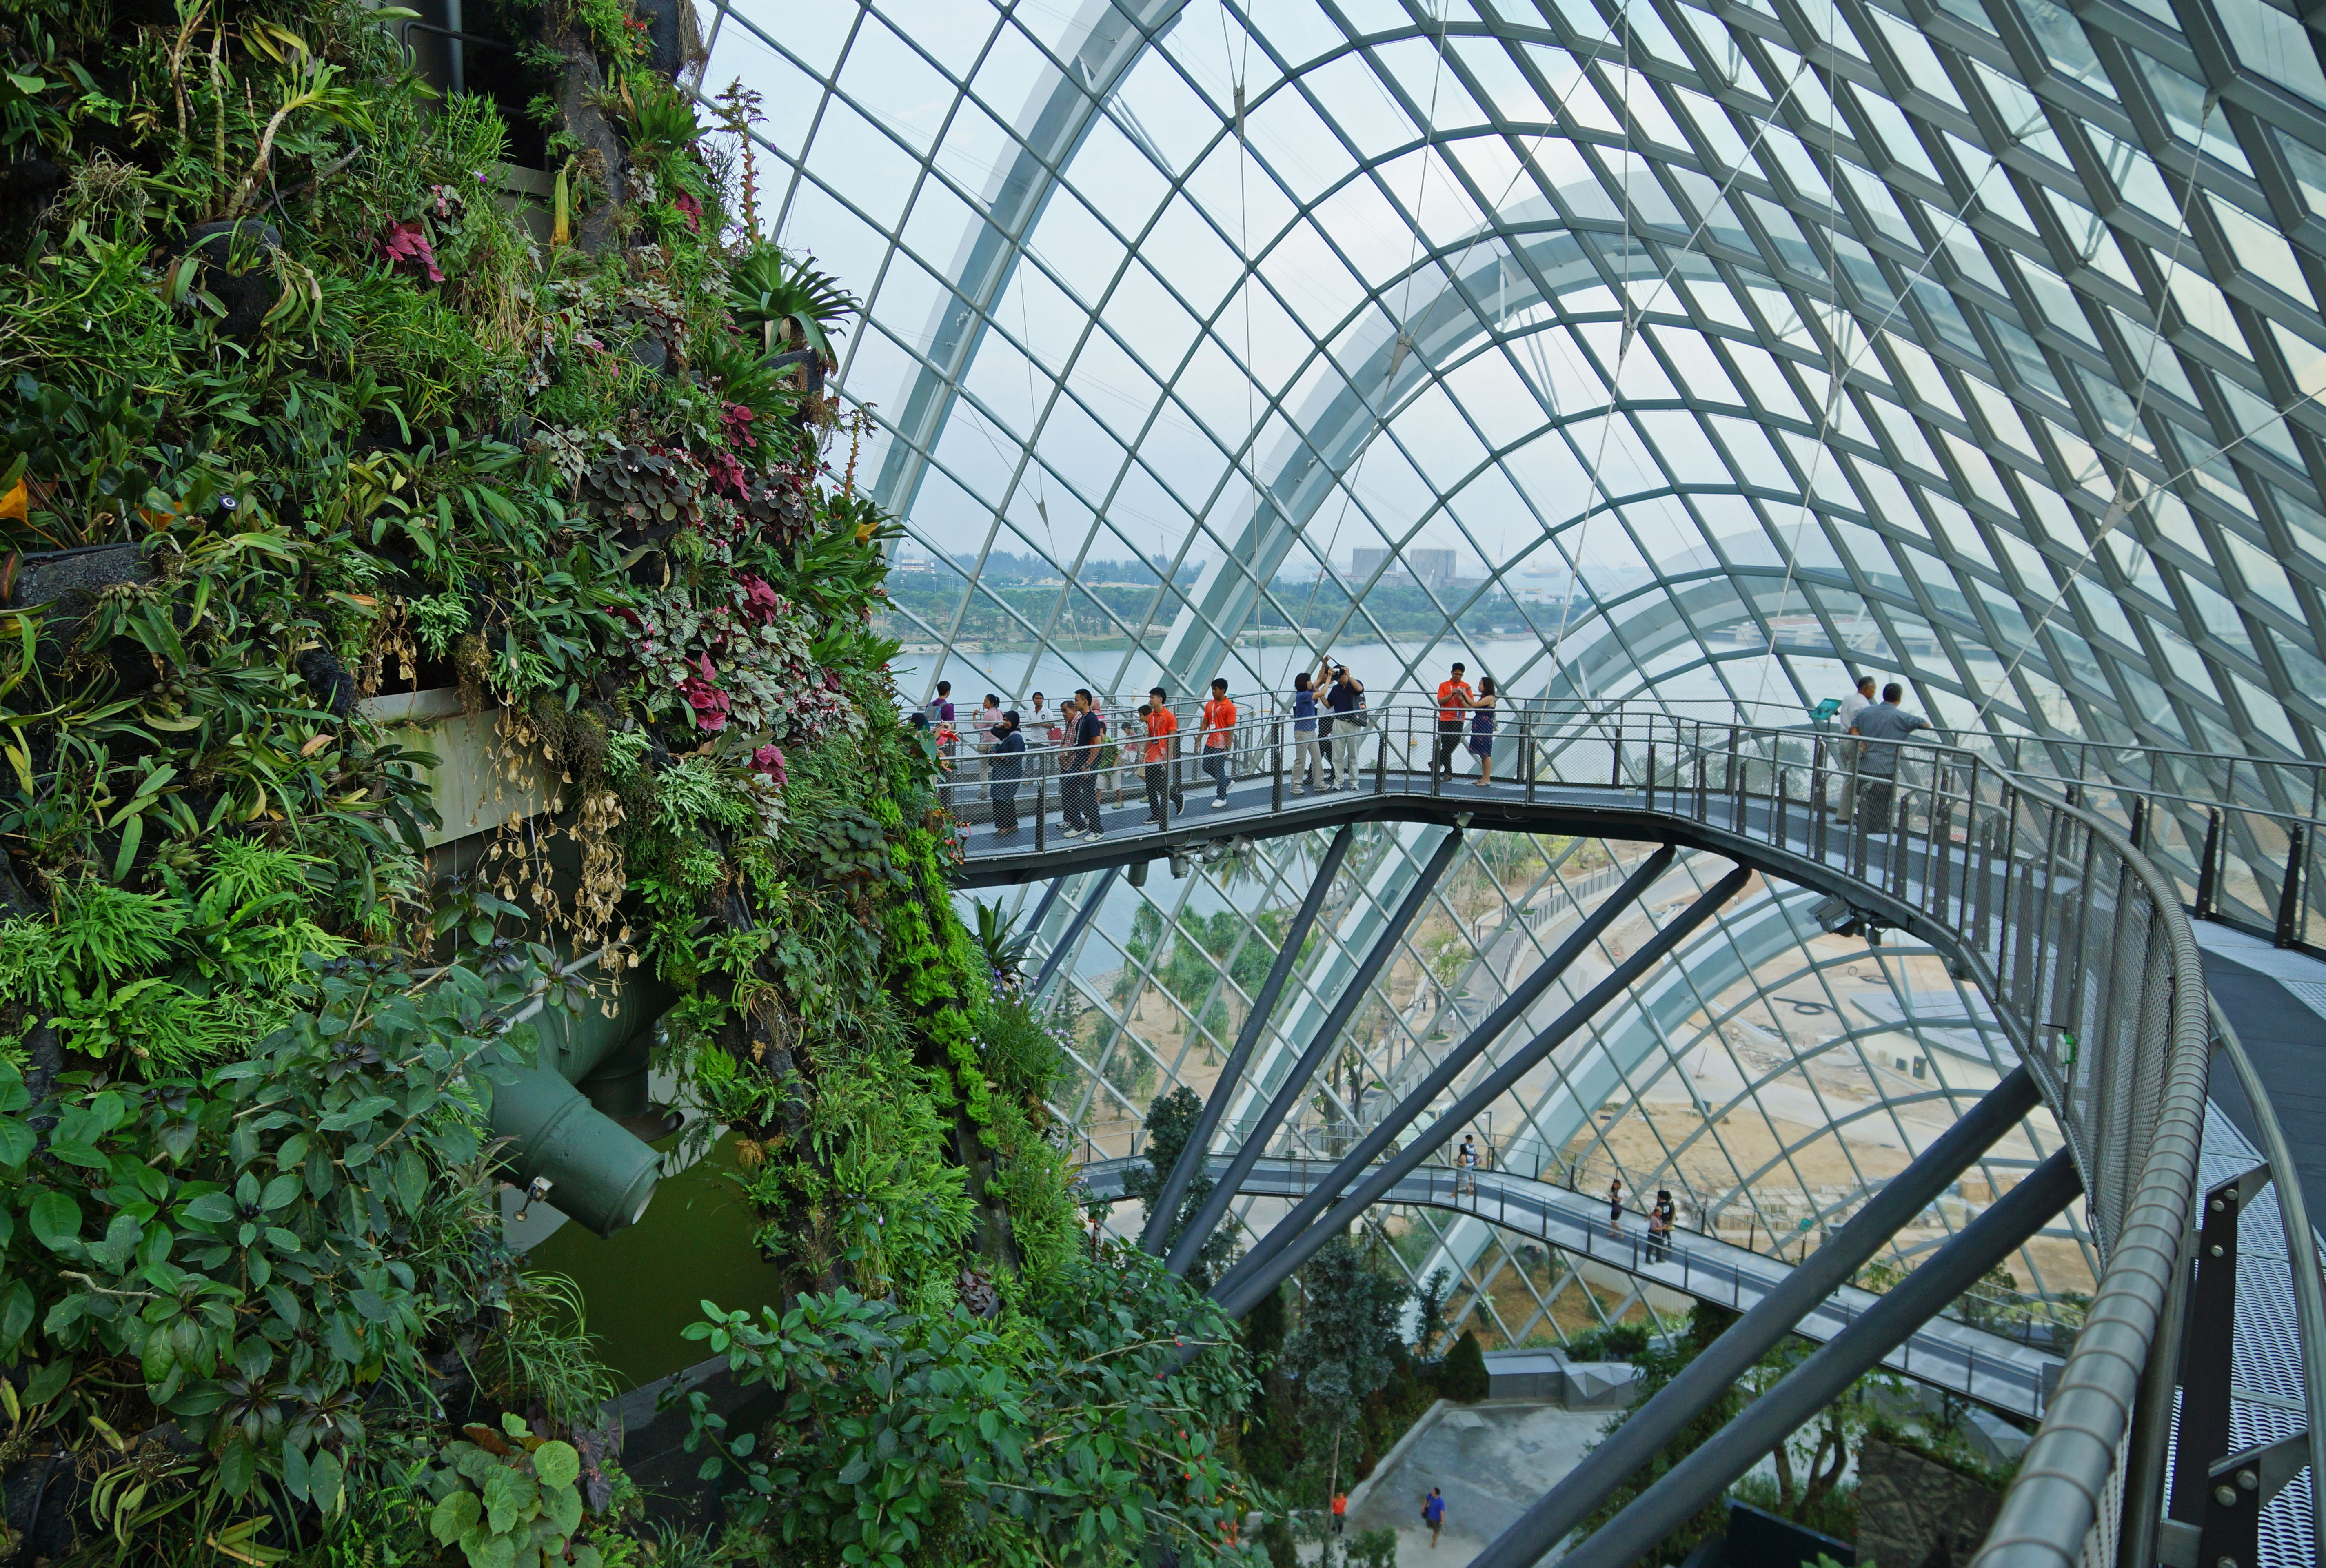 e39892ae67e70bdaa1bab2bfd7ee0d54 - Gardens By The Bay Opening Hours